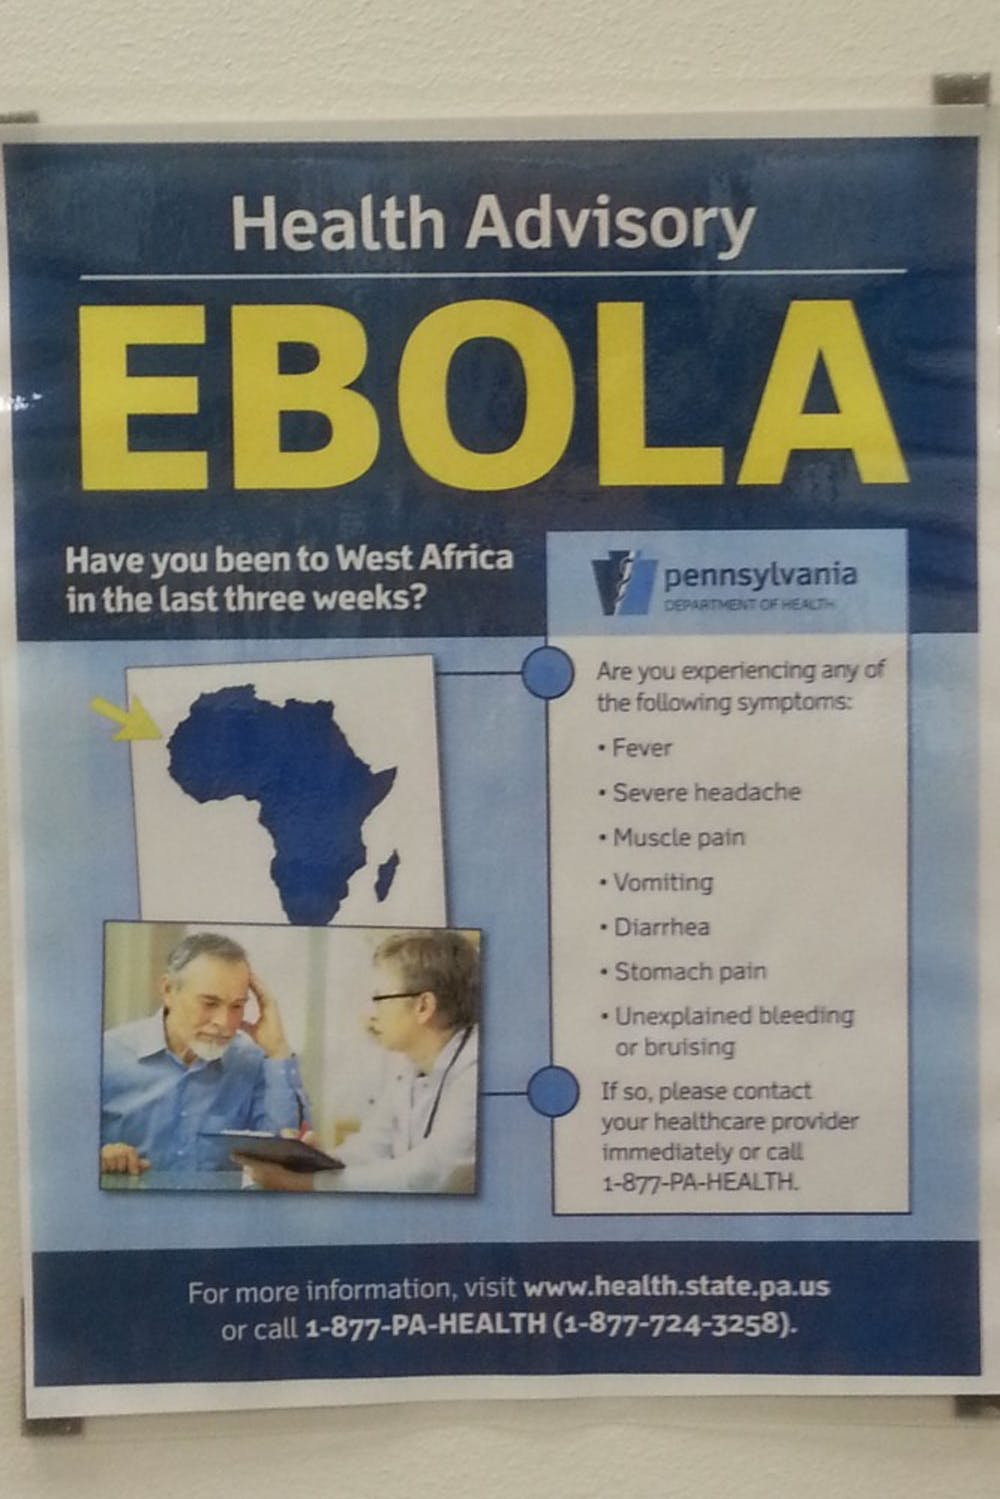 Students express slight concern over Ebola